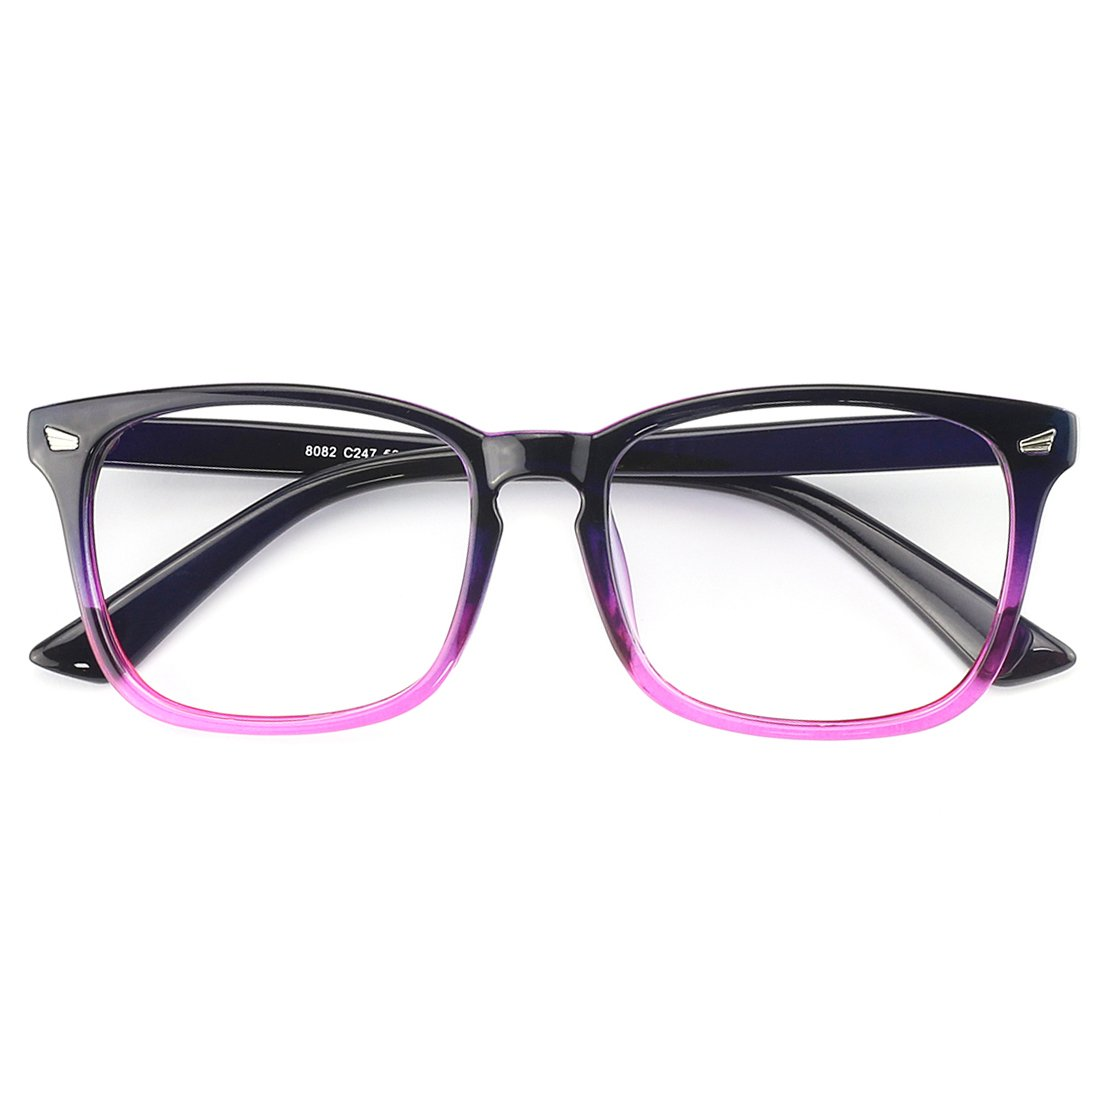 Slocyclub Blue light Blocking Glasses Vintage Nerd Square Keyhole Design Eyeglasses Frame for Women Men